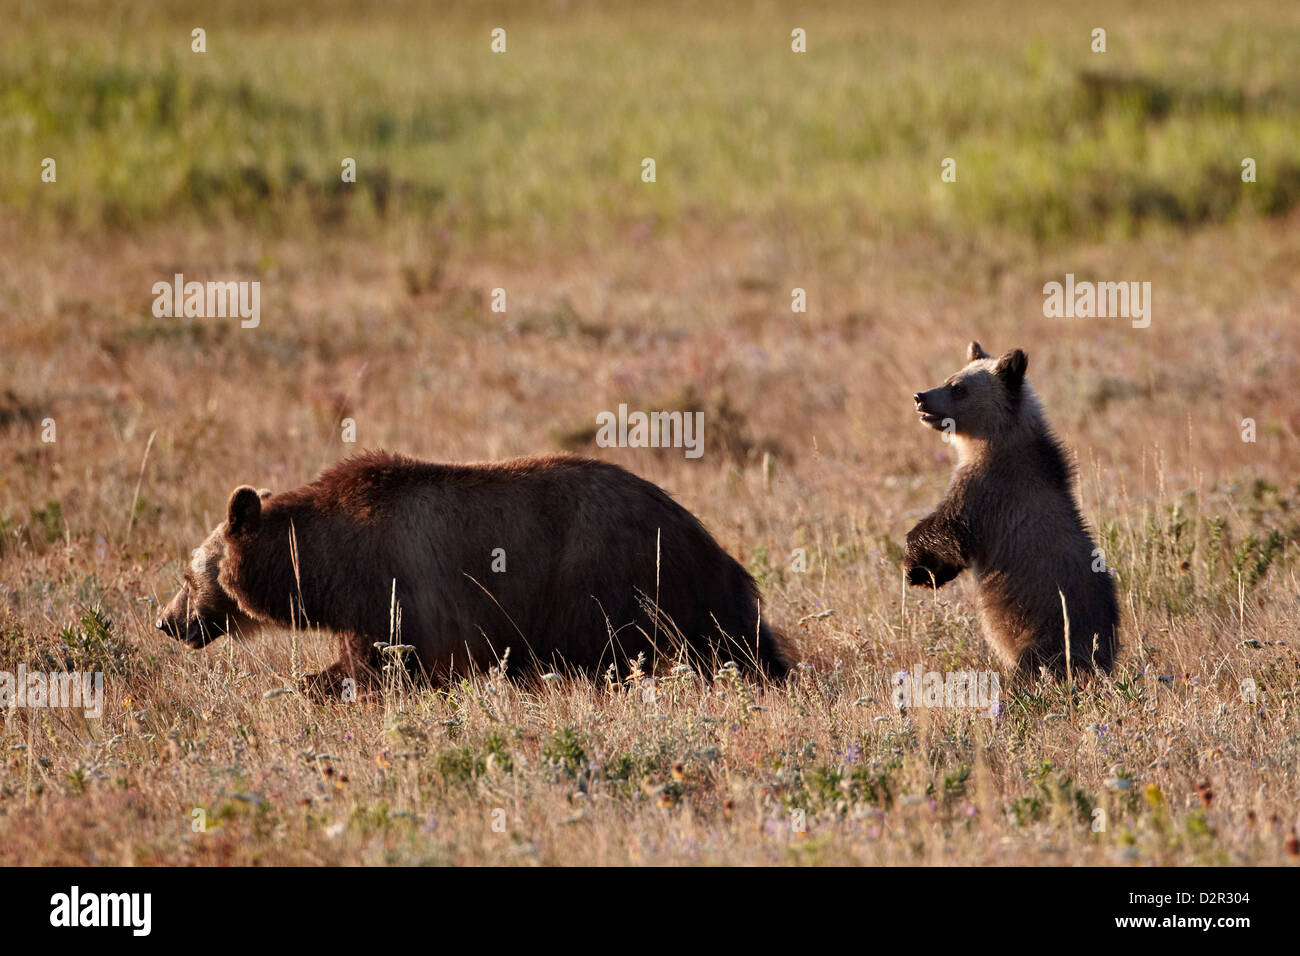 Grizzly bear (Ursus arctos horribilis) sow and yearling cub, Glacier National Park, Montana, USA - Stock Image